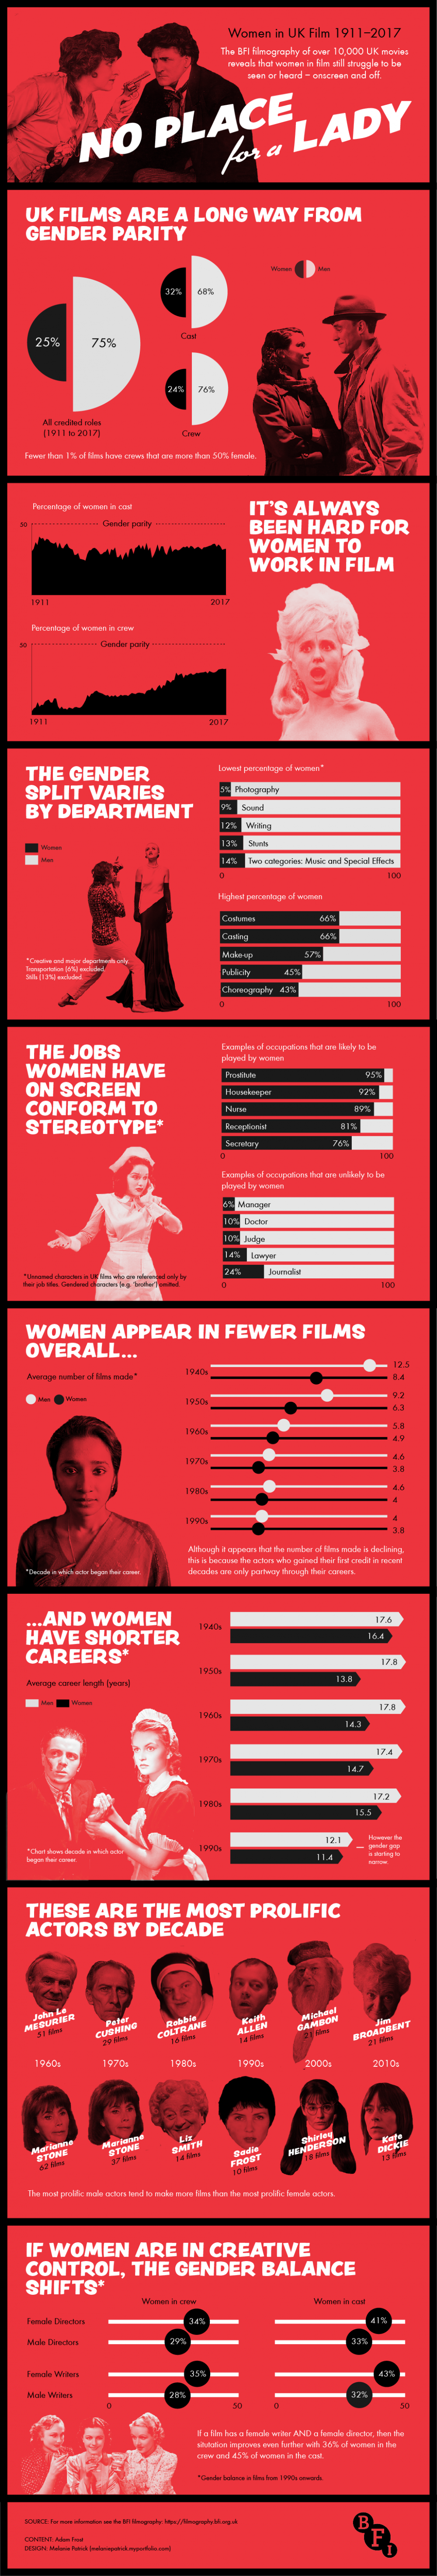 BFI Filmography infographic: women in film